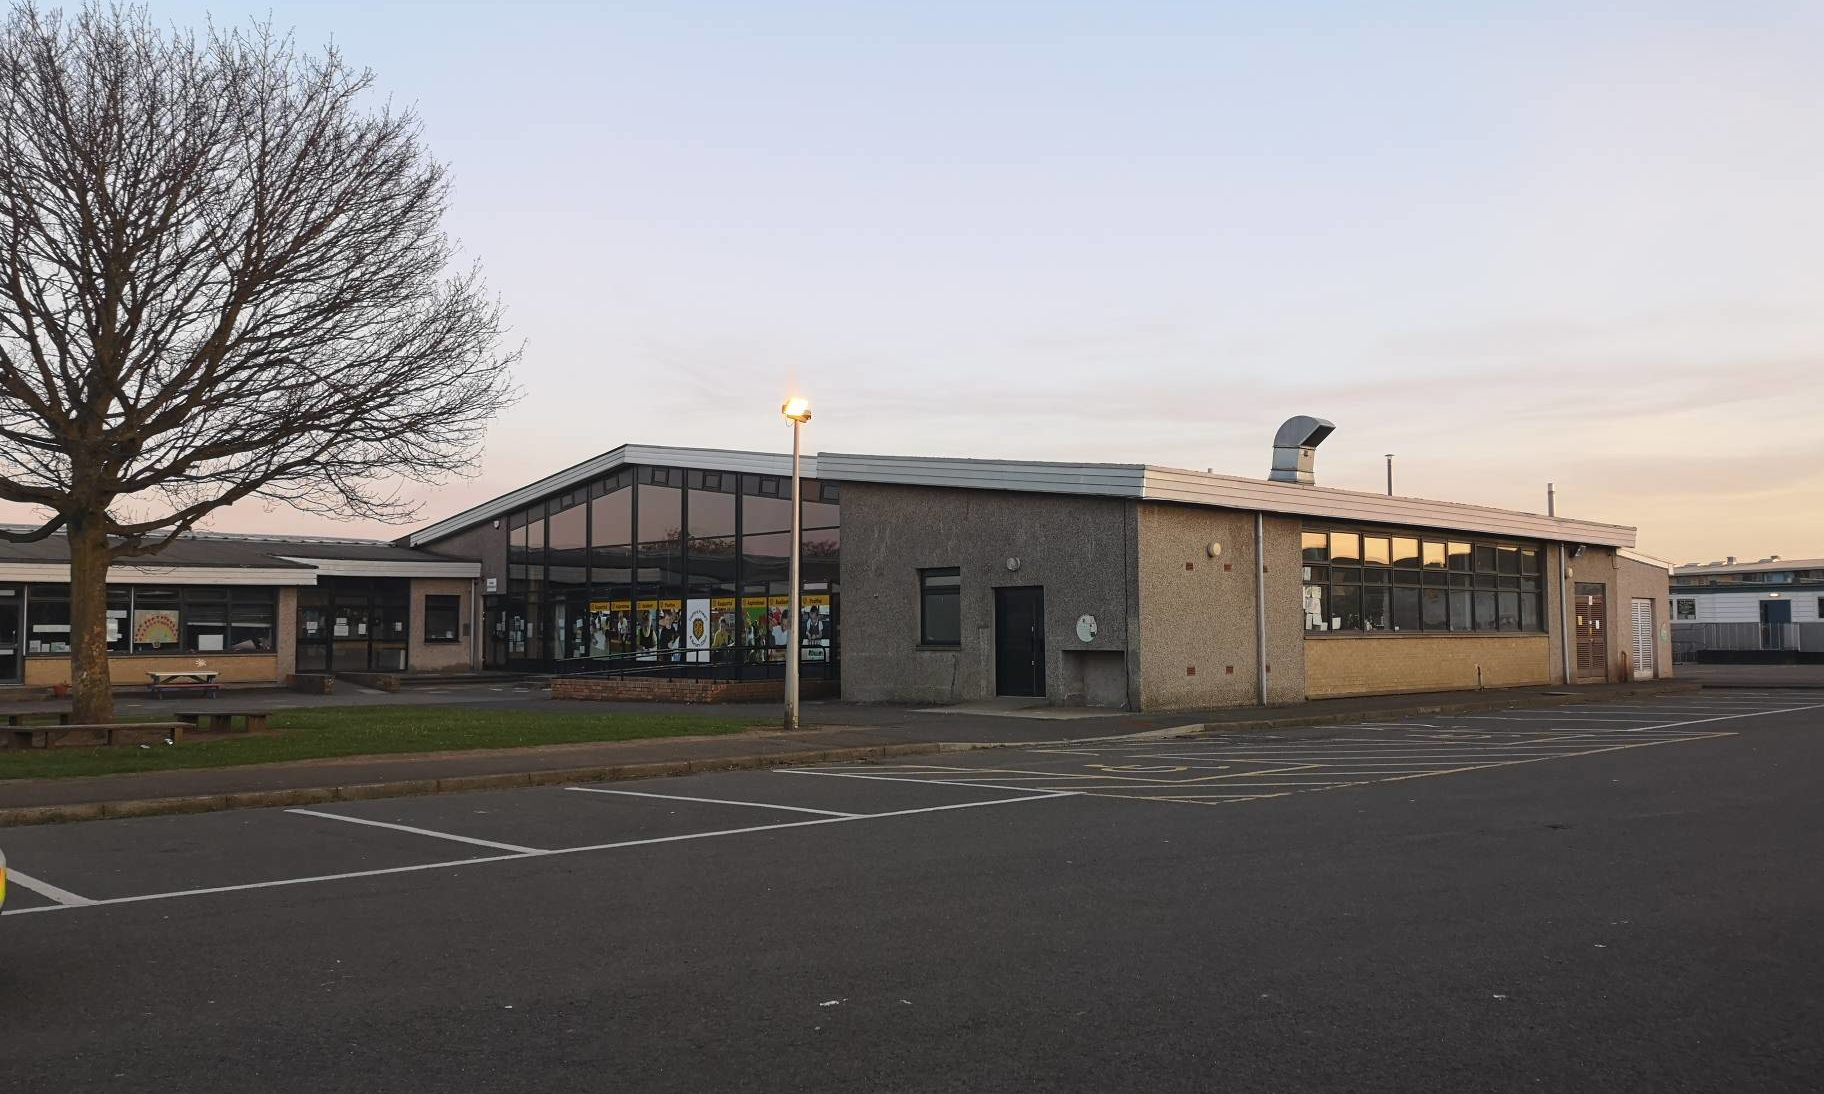 Foulford Primary School.